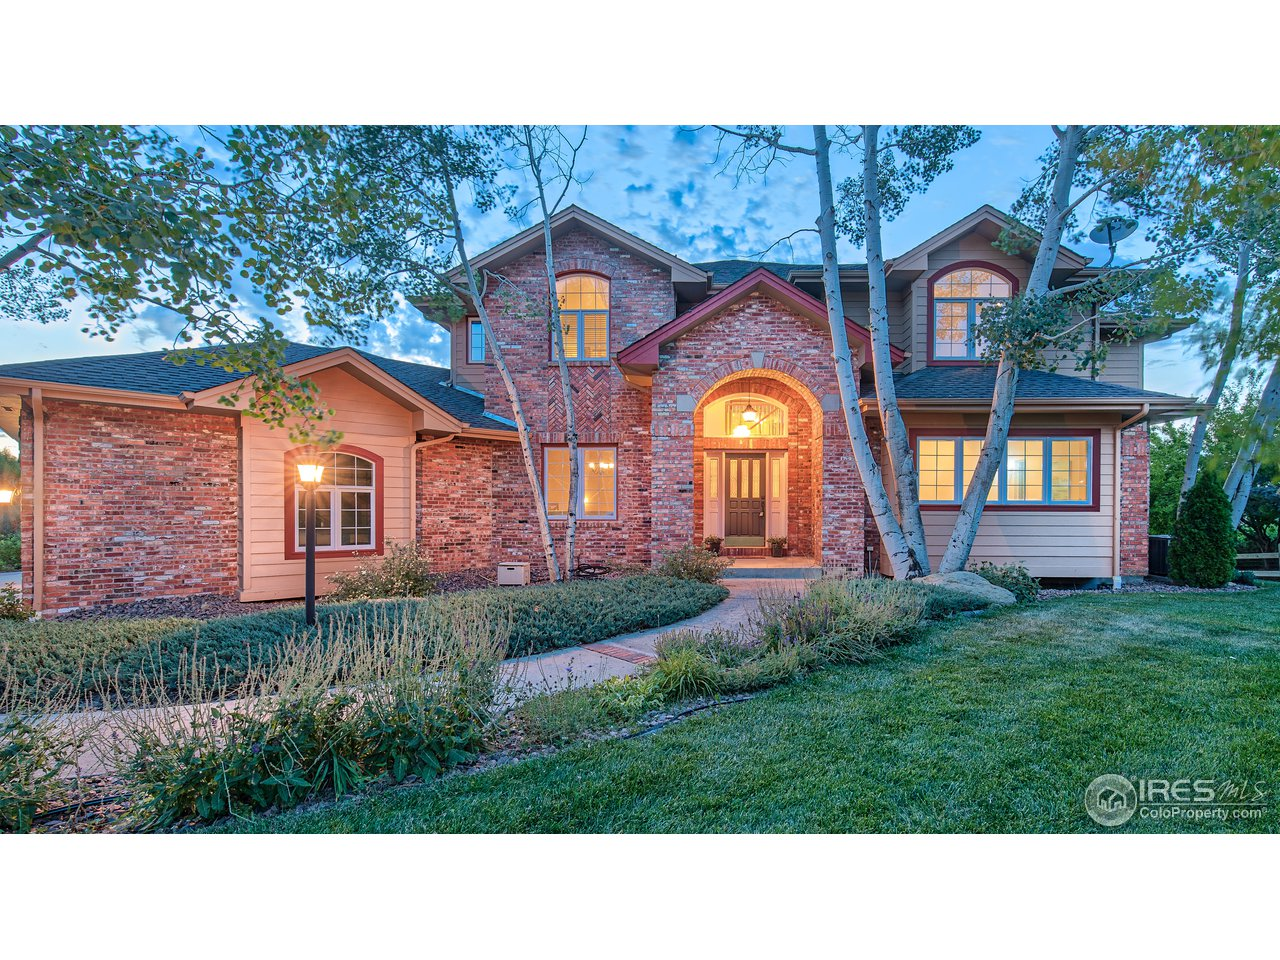 8525 Waterford Way, Niwot CO 80503